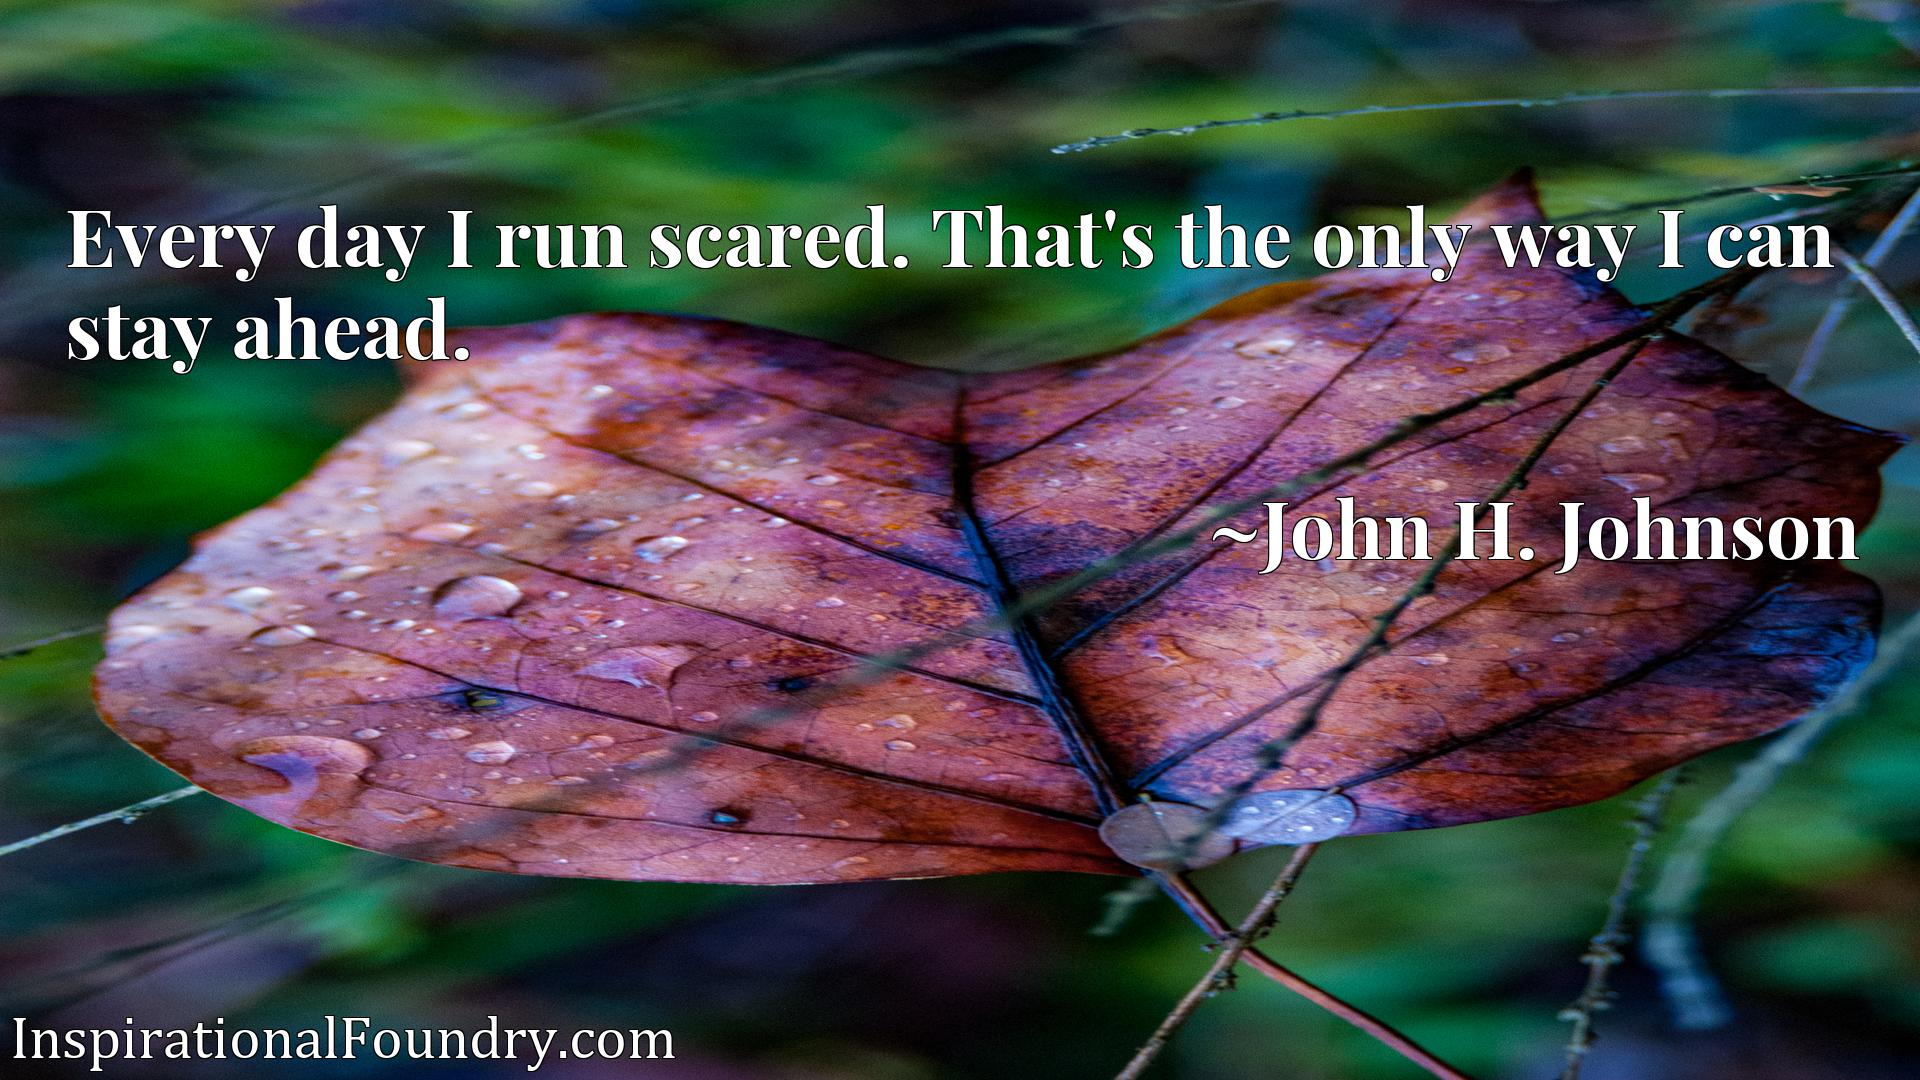 Quote Picture :Every day I run scared. That's the only way I can stay ahead.